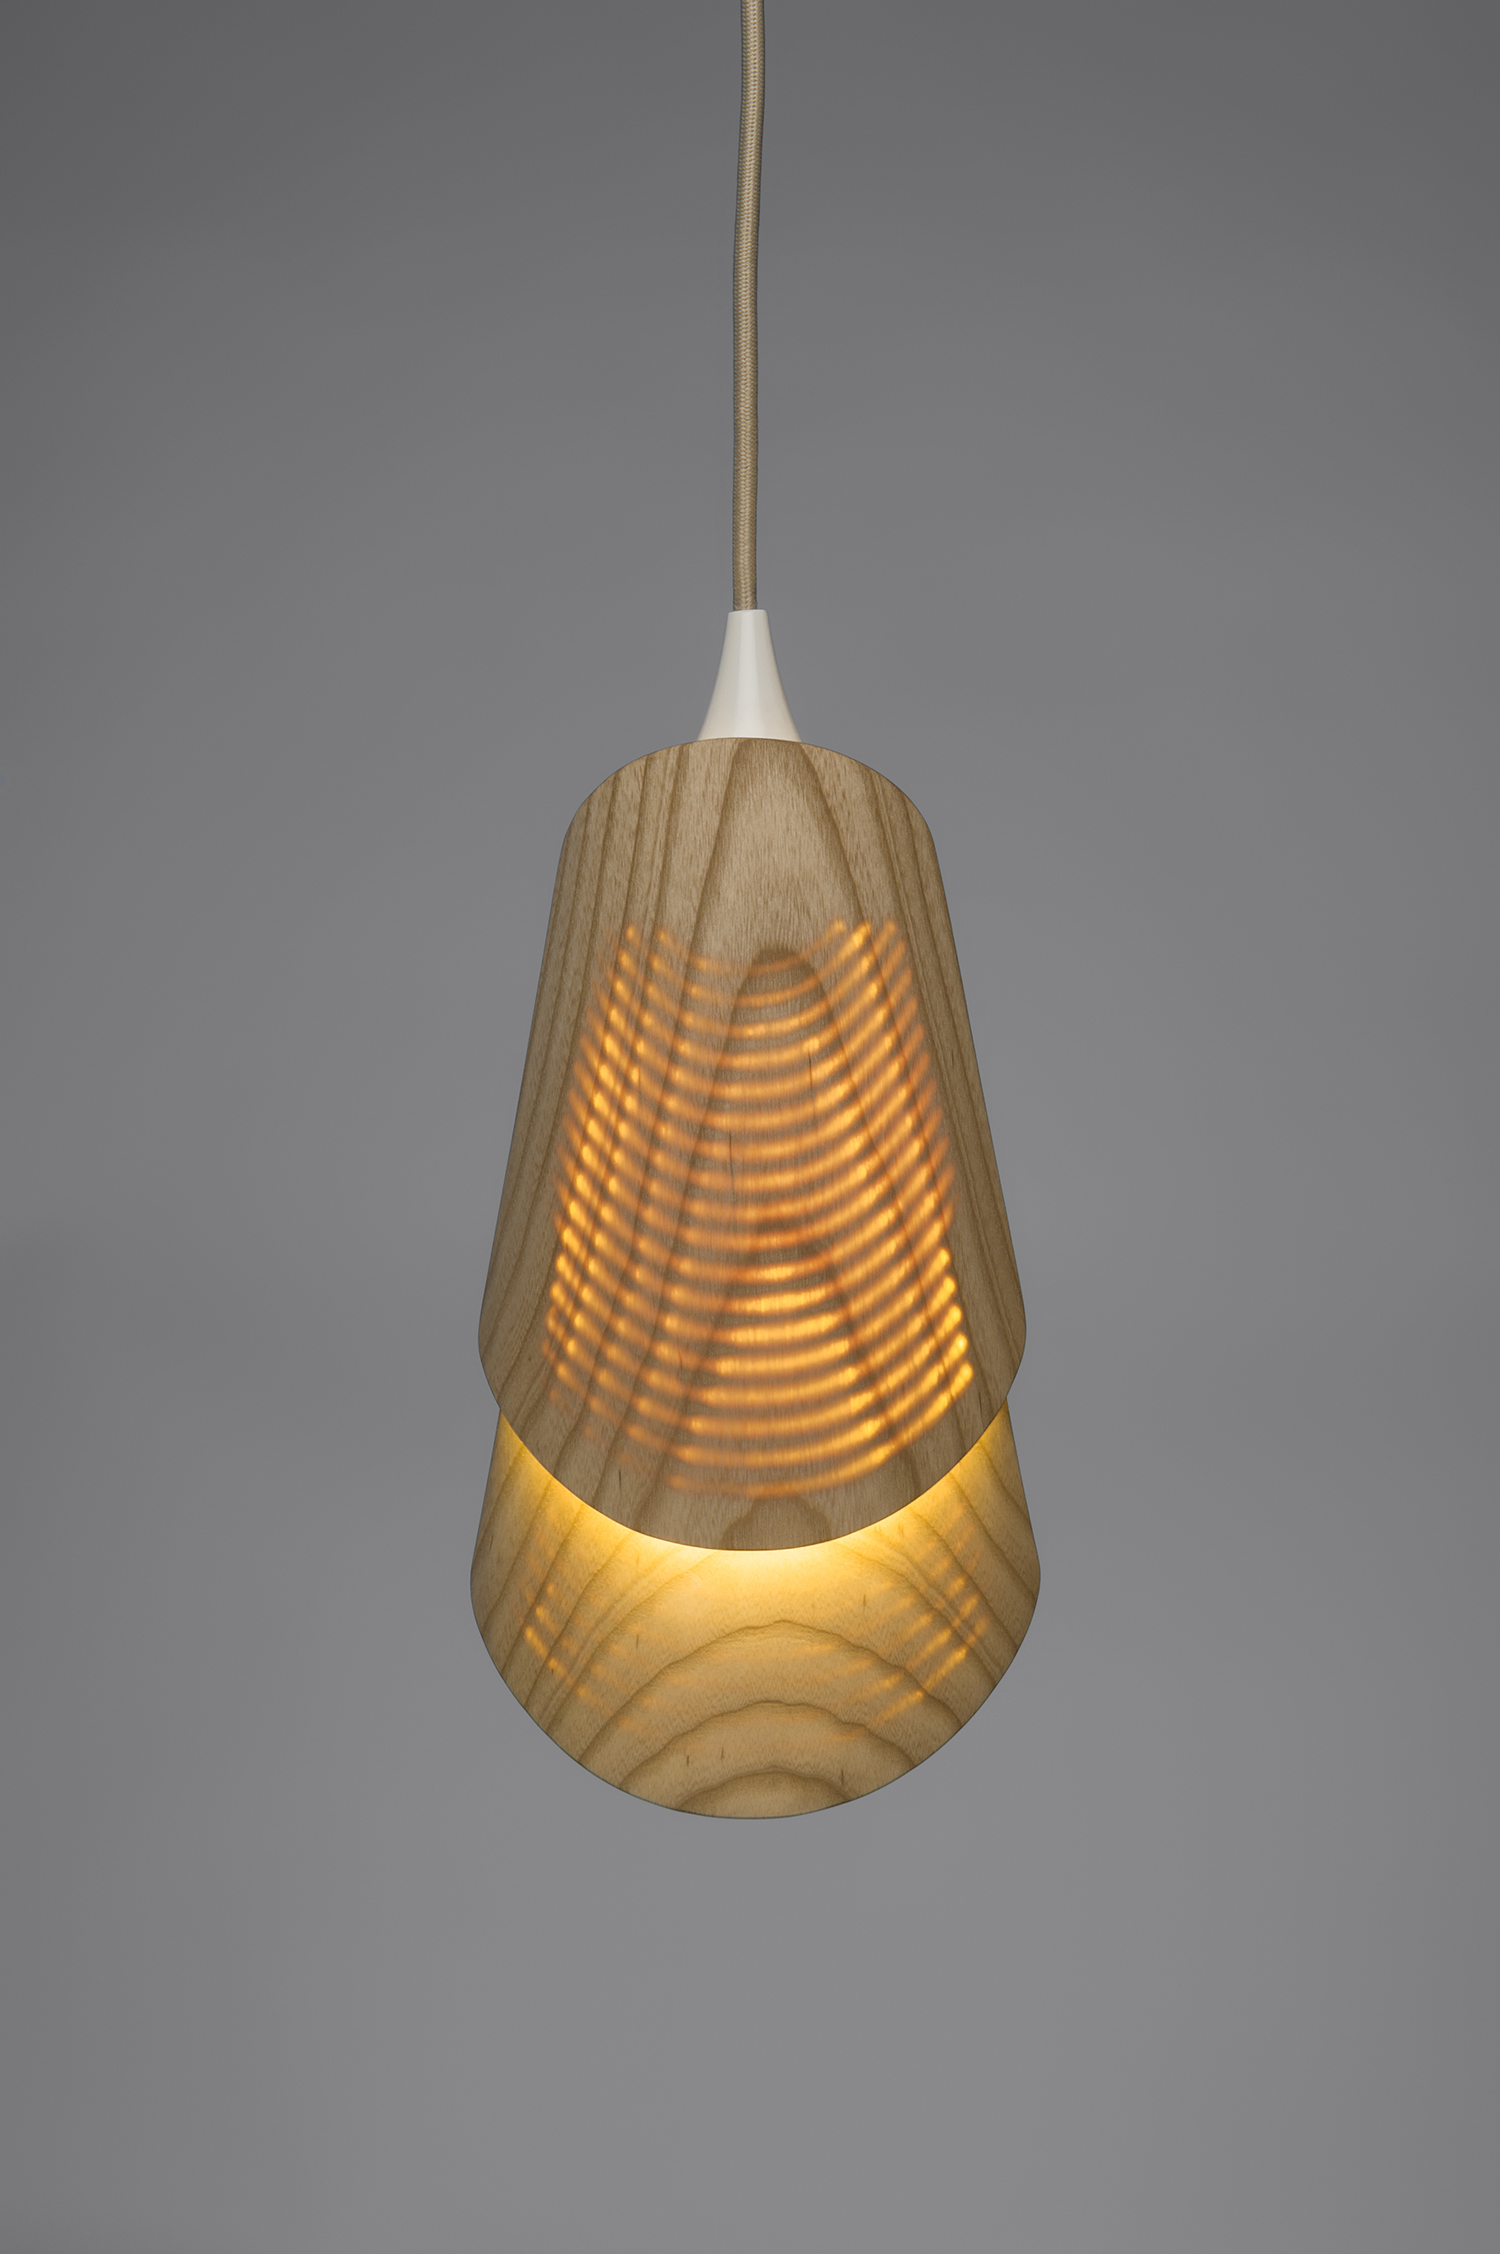 Hanging light with the bulb on